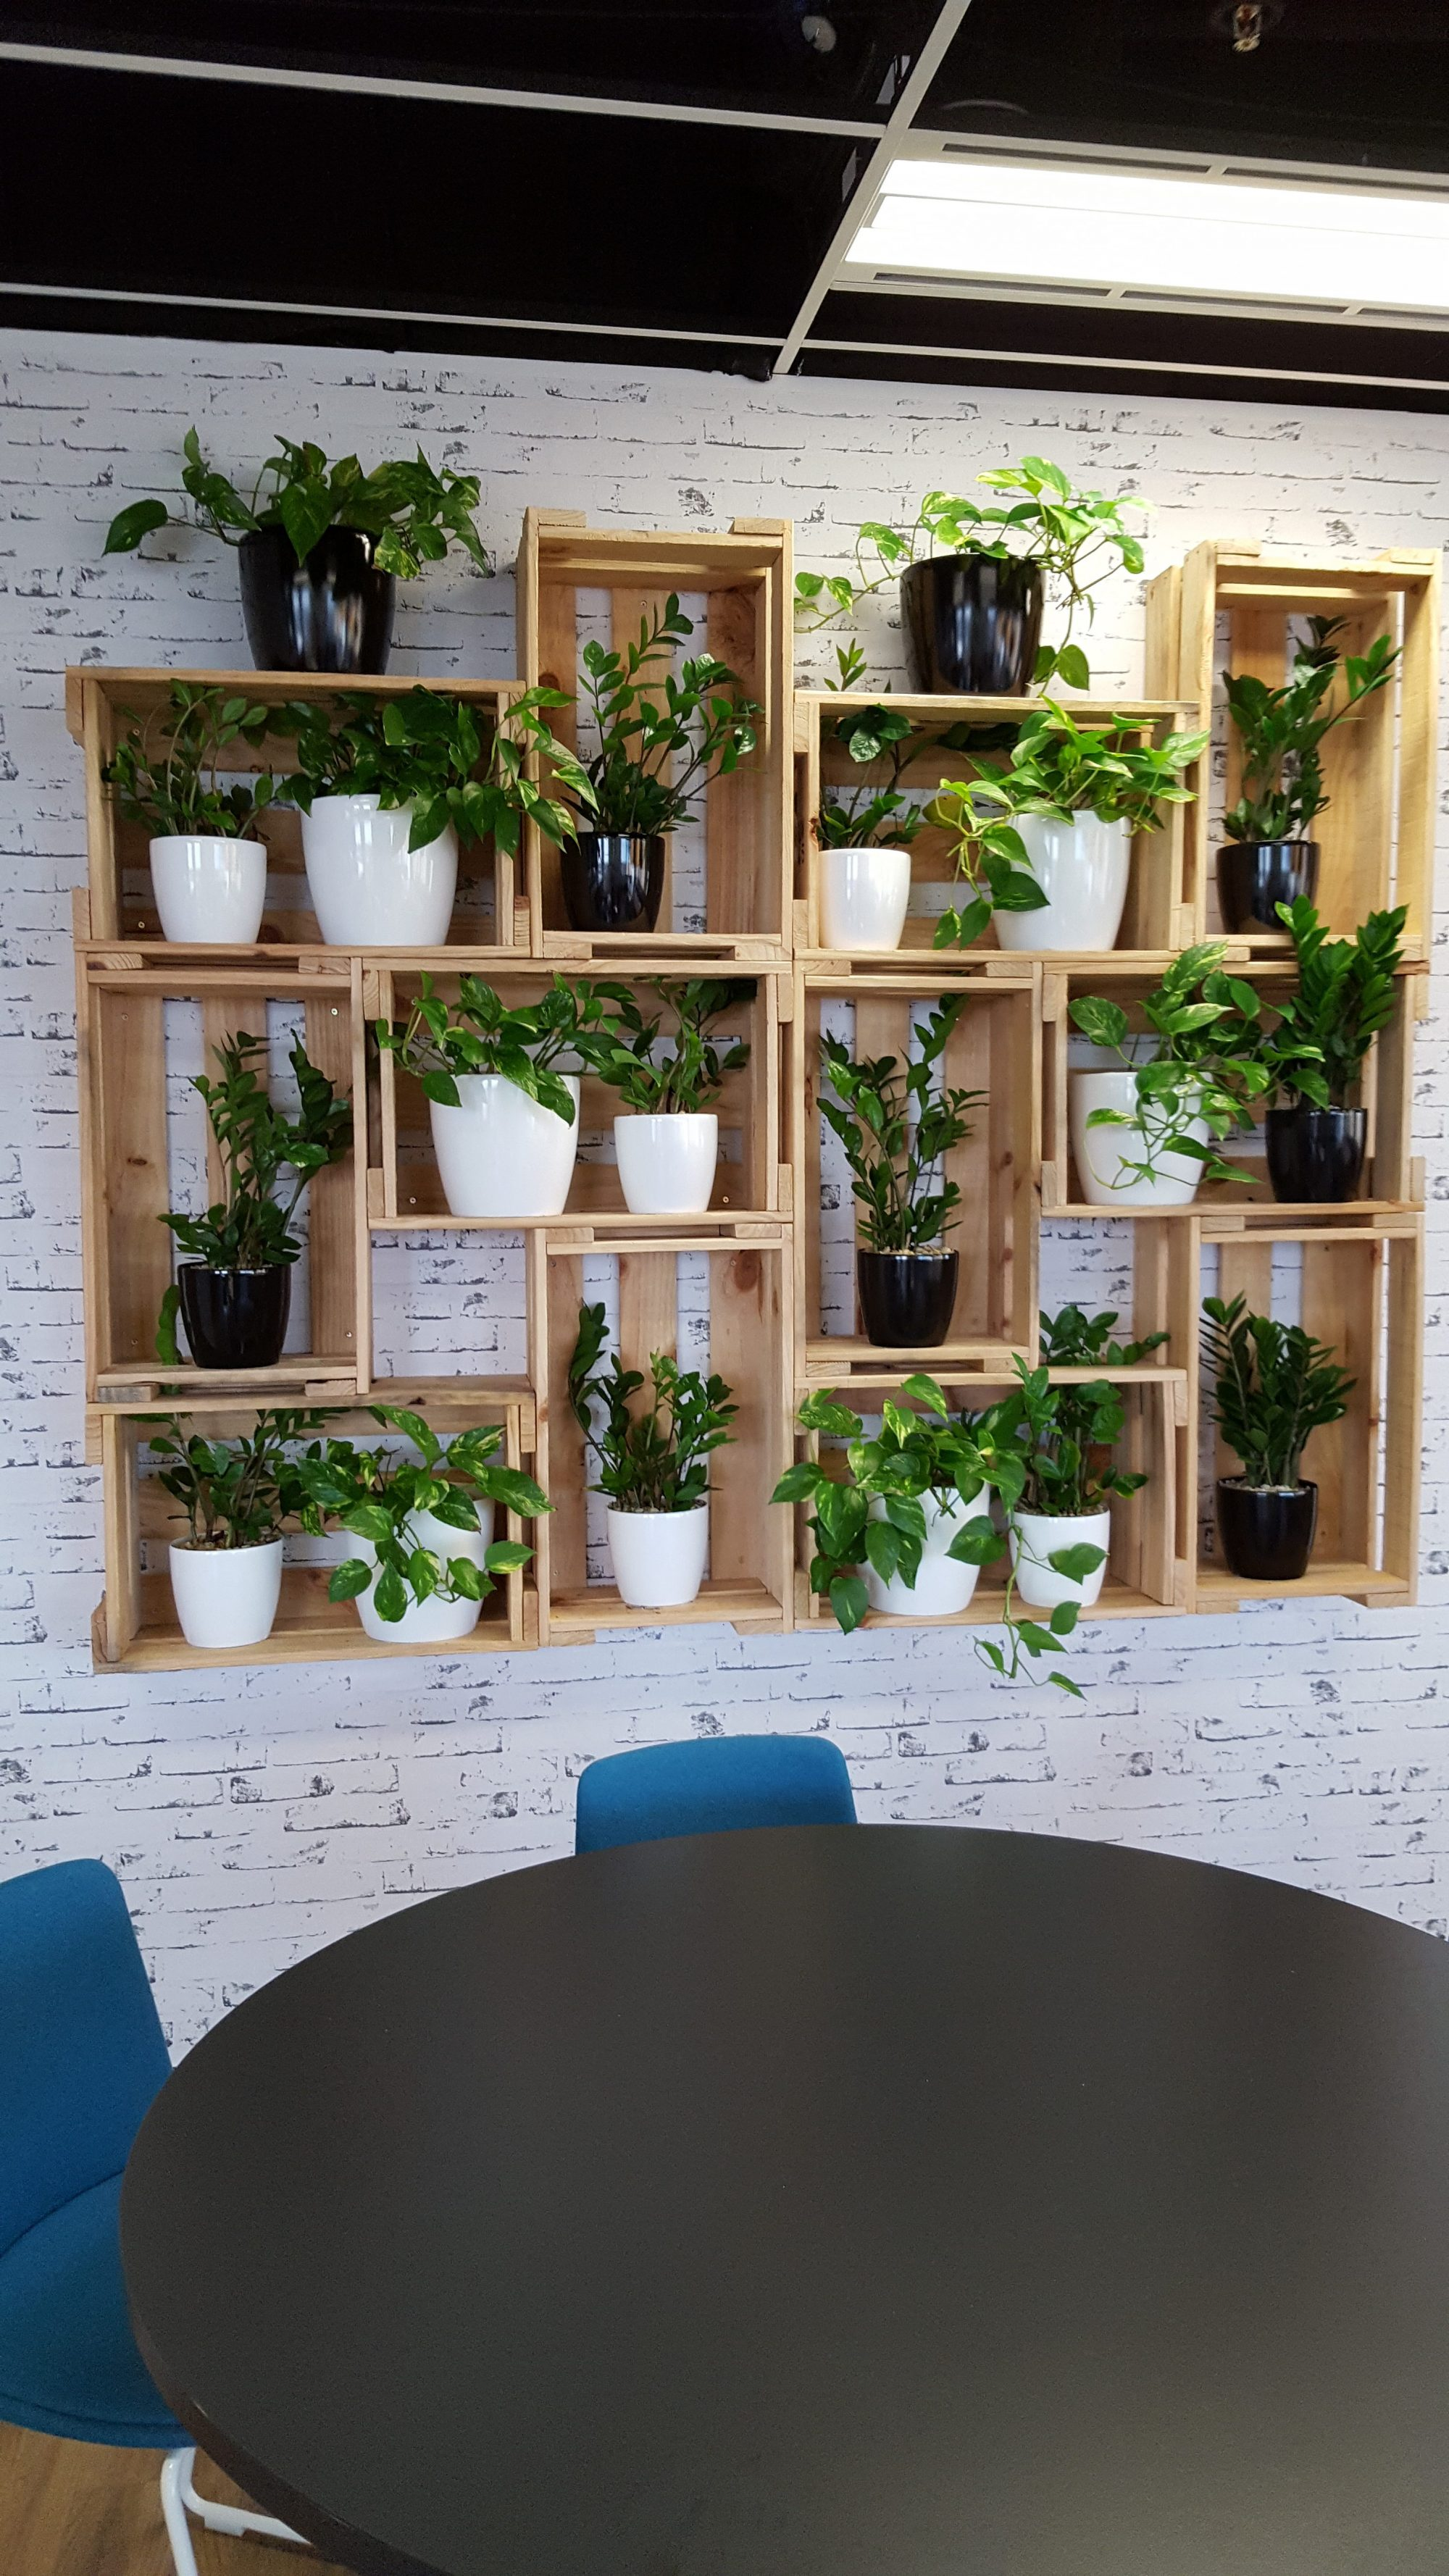 Pothos, Ivy, Green Design Indoor Plant Hire, Indoor Plant Hire, Office Plants, Office Plant Hire, biophilia